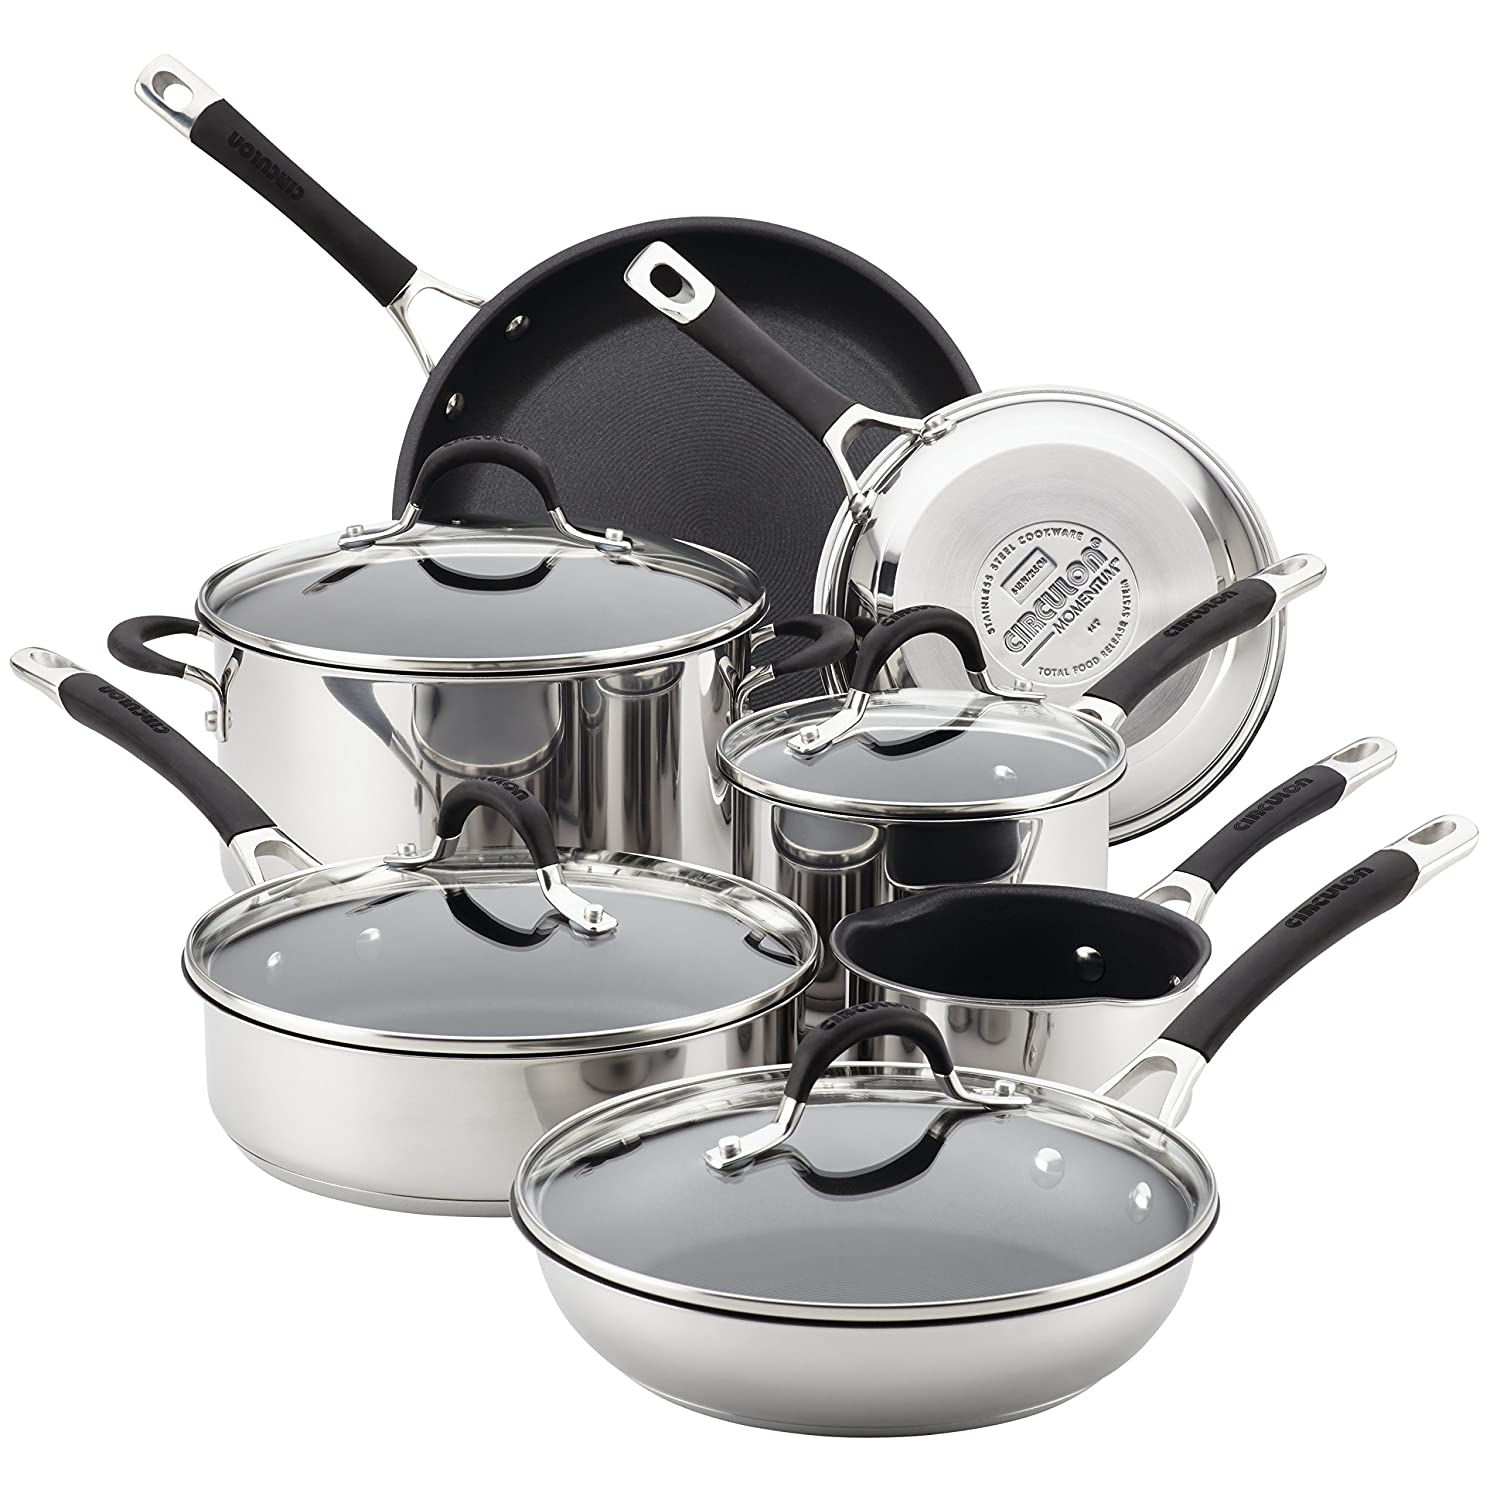 Circulon Momentum Stainless Steel Nonstick 11-Piece Pots and Pans Cookware Set